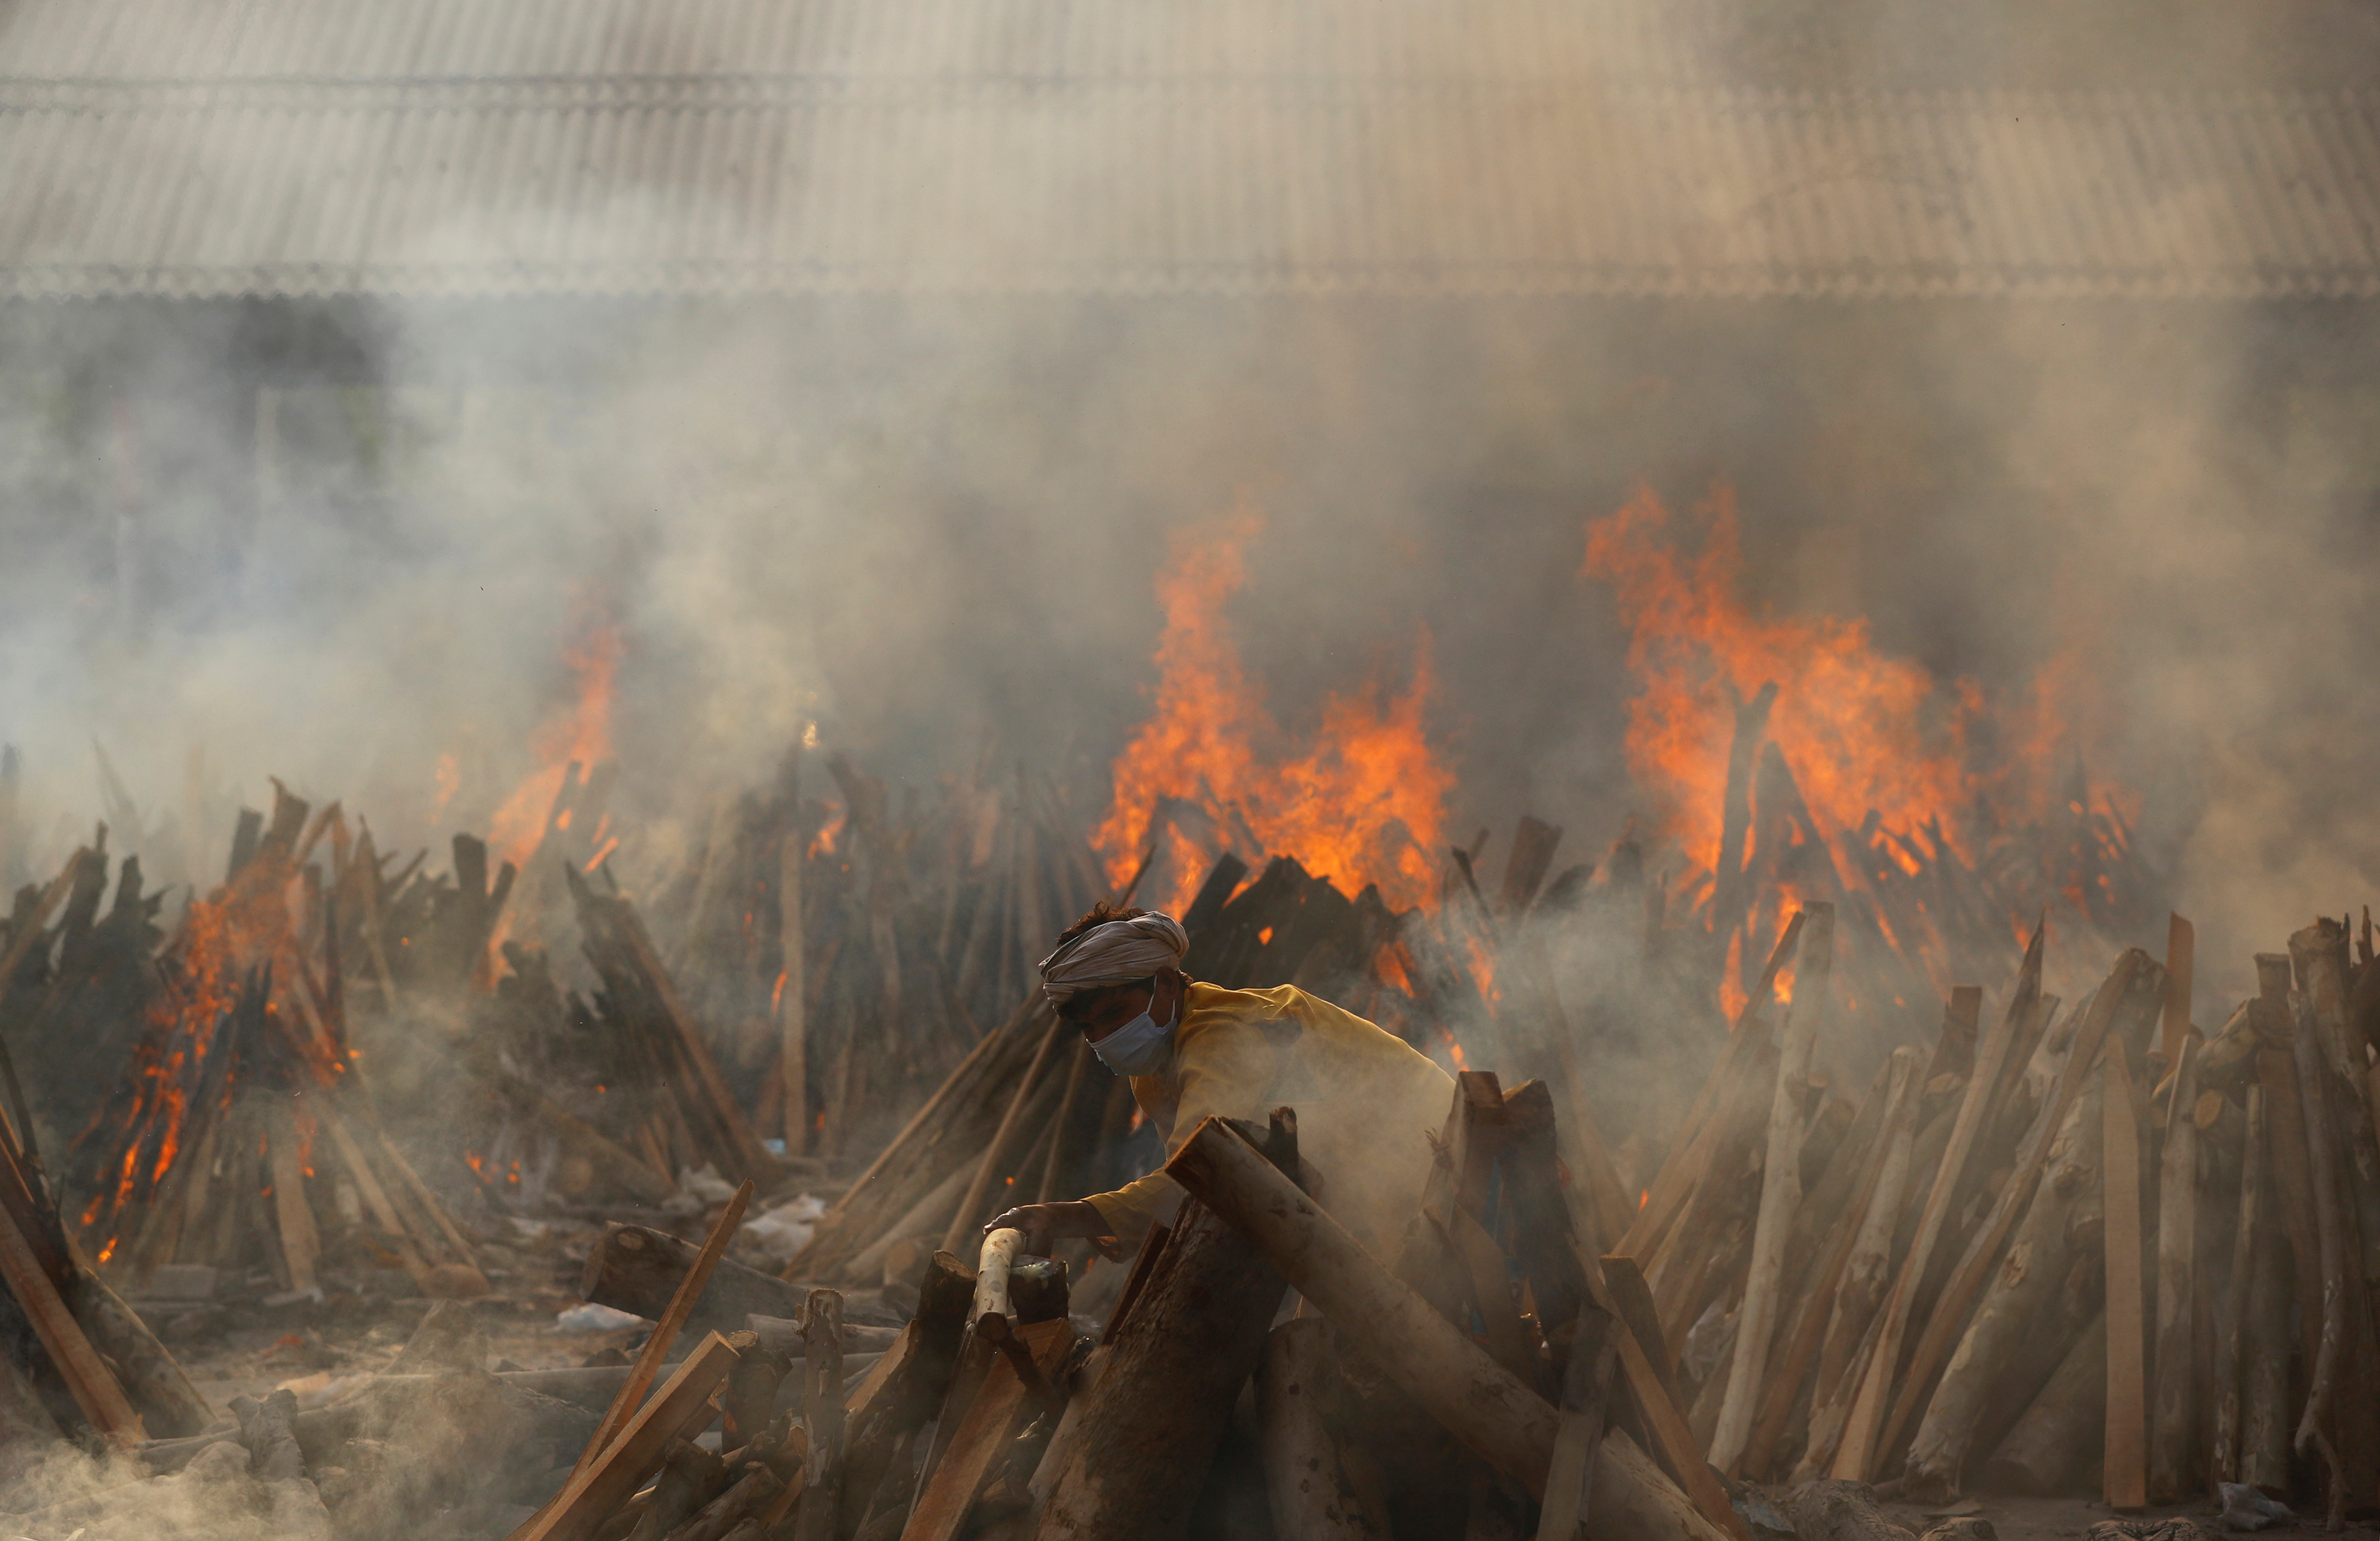 A man prepares a funeral pyre during a mass cremation of those who died from the coronavirus disease (COVID-19), at a crematorium in New Delhi, India May 1, 2021. REUTERS/Adnan Abidi